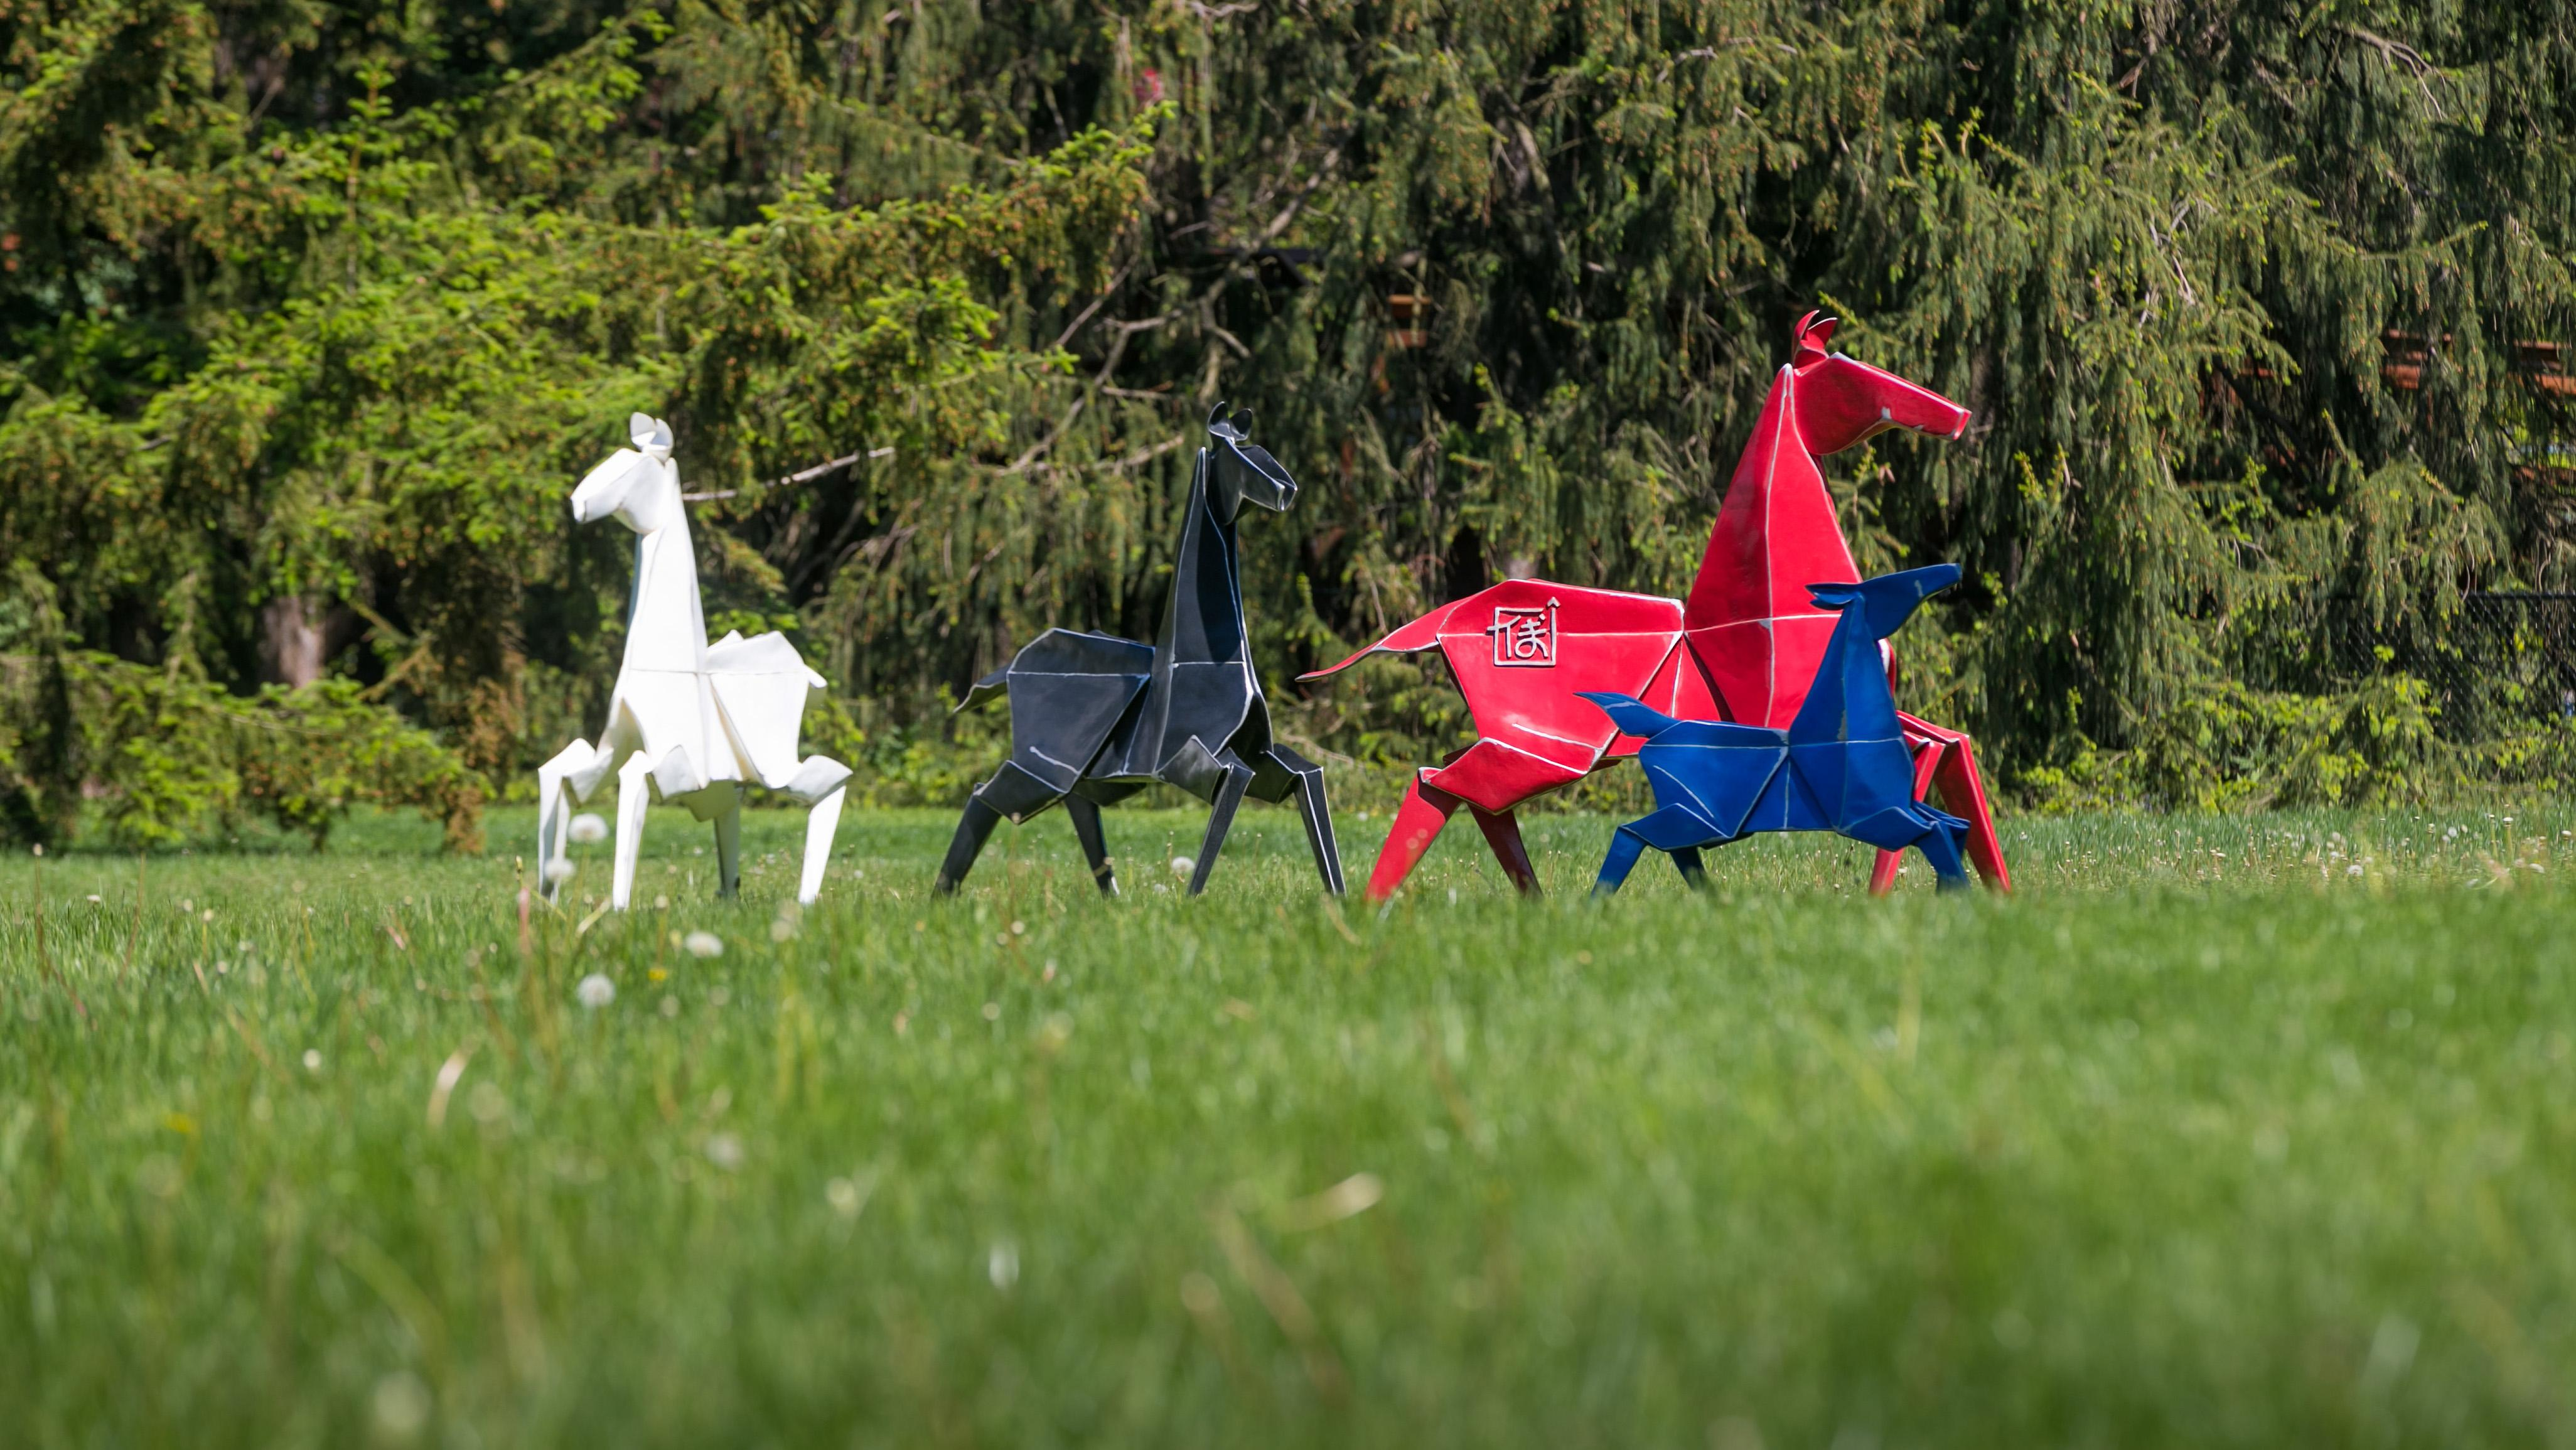 """Painted Ponies"" is one of 25 displays debuting at The Morton Arboretum Friday. (Courtesy of The Morton Arboretum)"